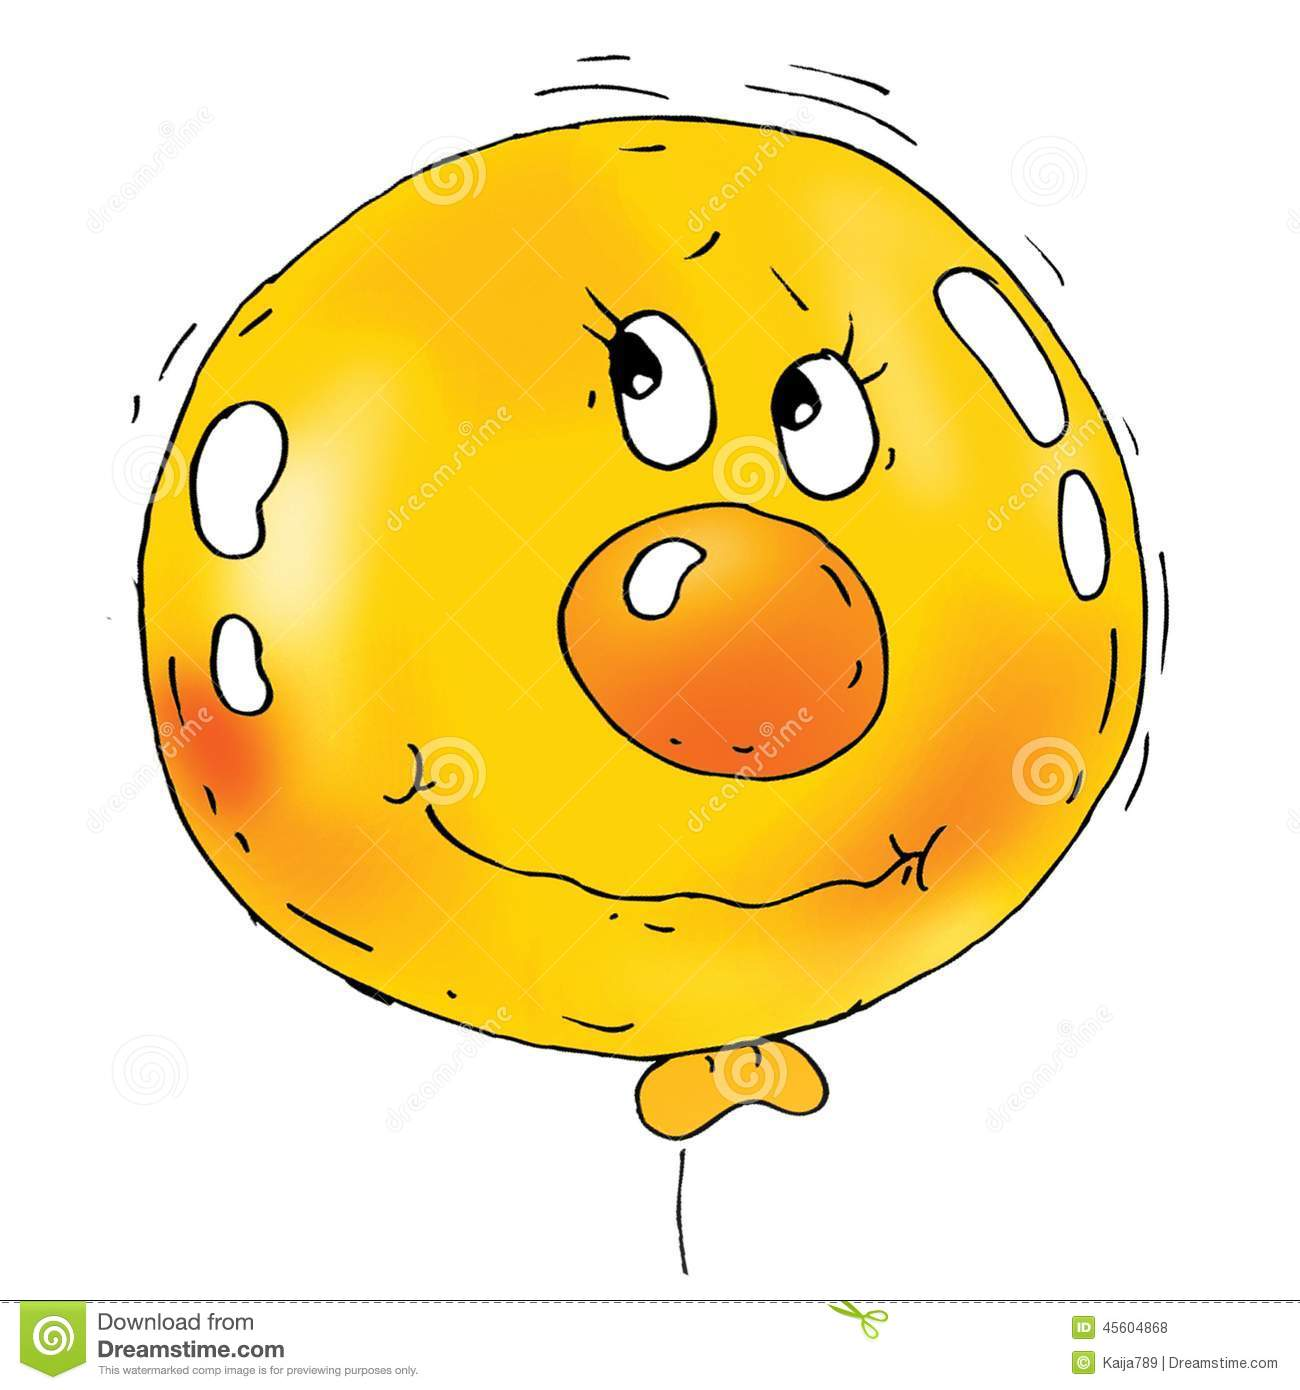 Funny balloon faces - Cartoon Balloon Faces Royalty Free Stock Photos